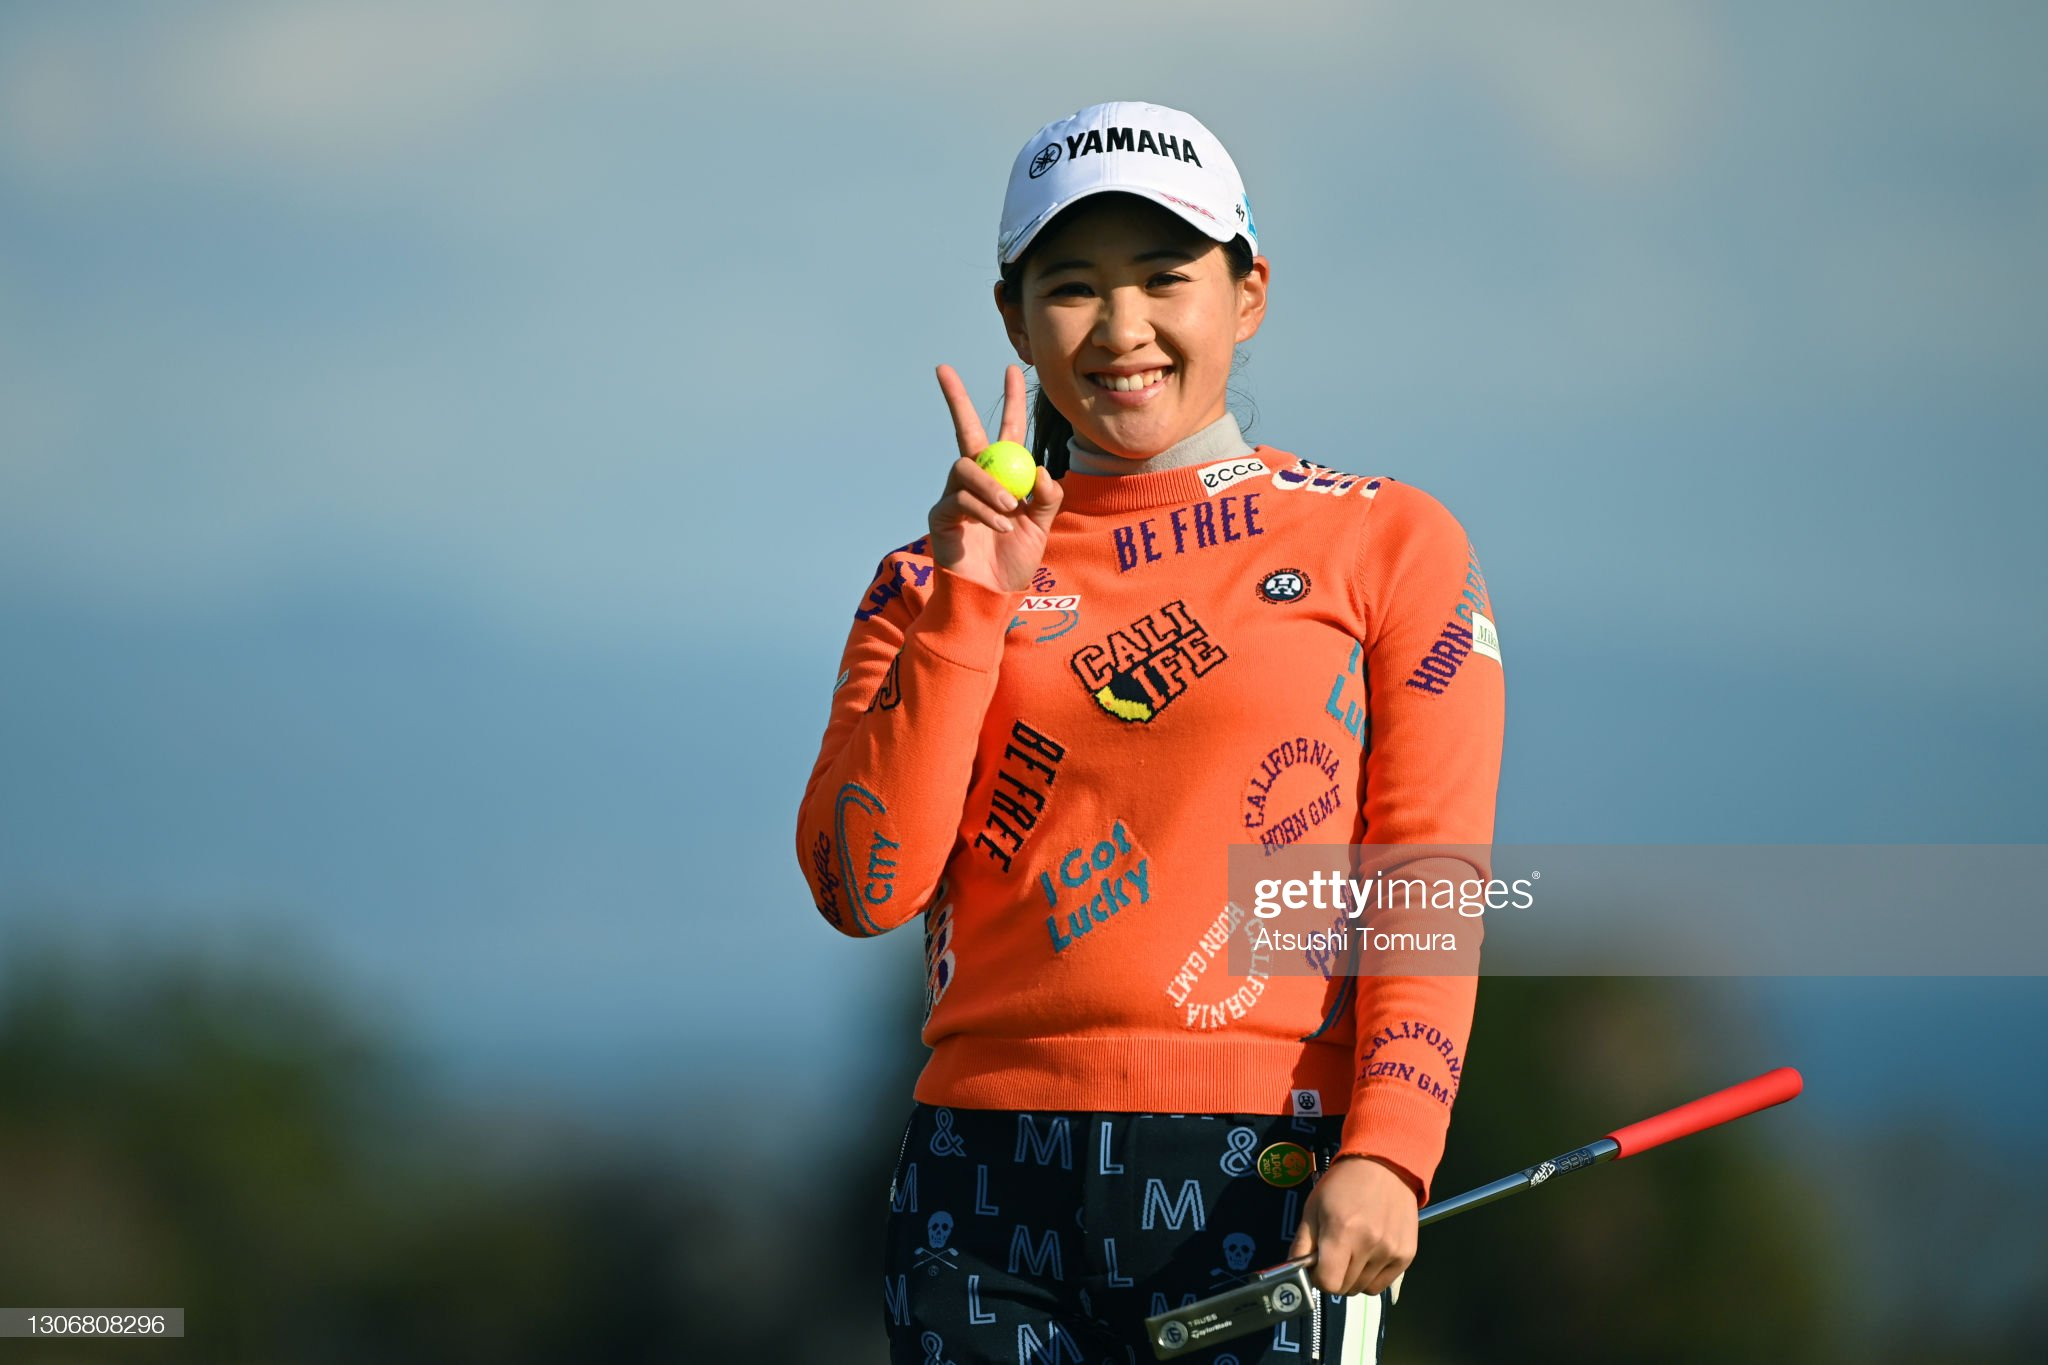 https://media.gettyimages.com/photos/kana-nagai-of-japan-celebrates-the-birdie-on-the-13th-green-during-picture-id1306808296?s=2048x2048